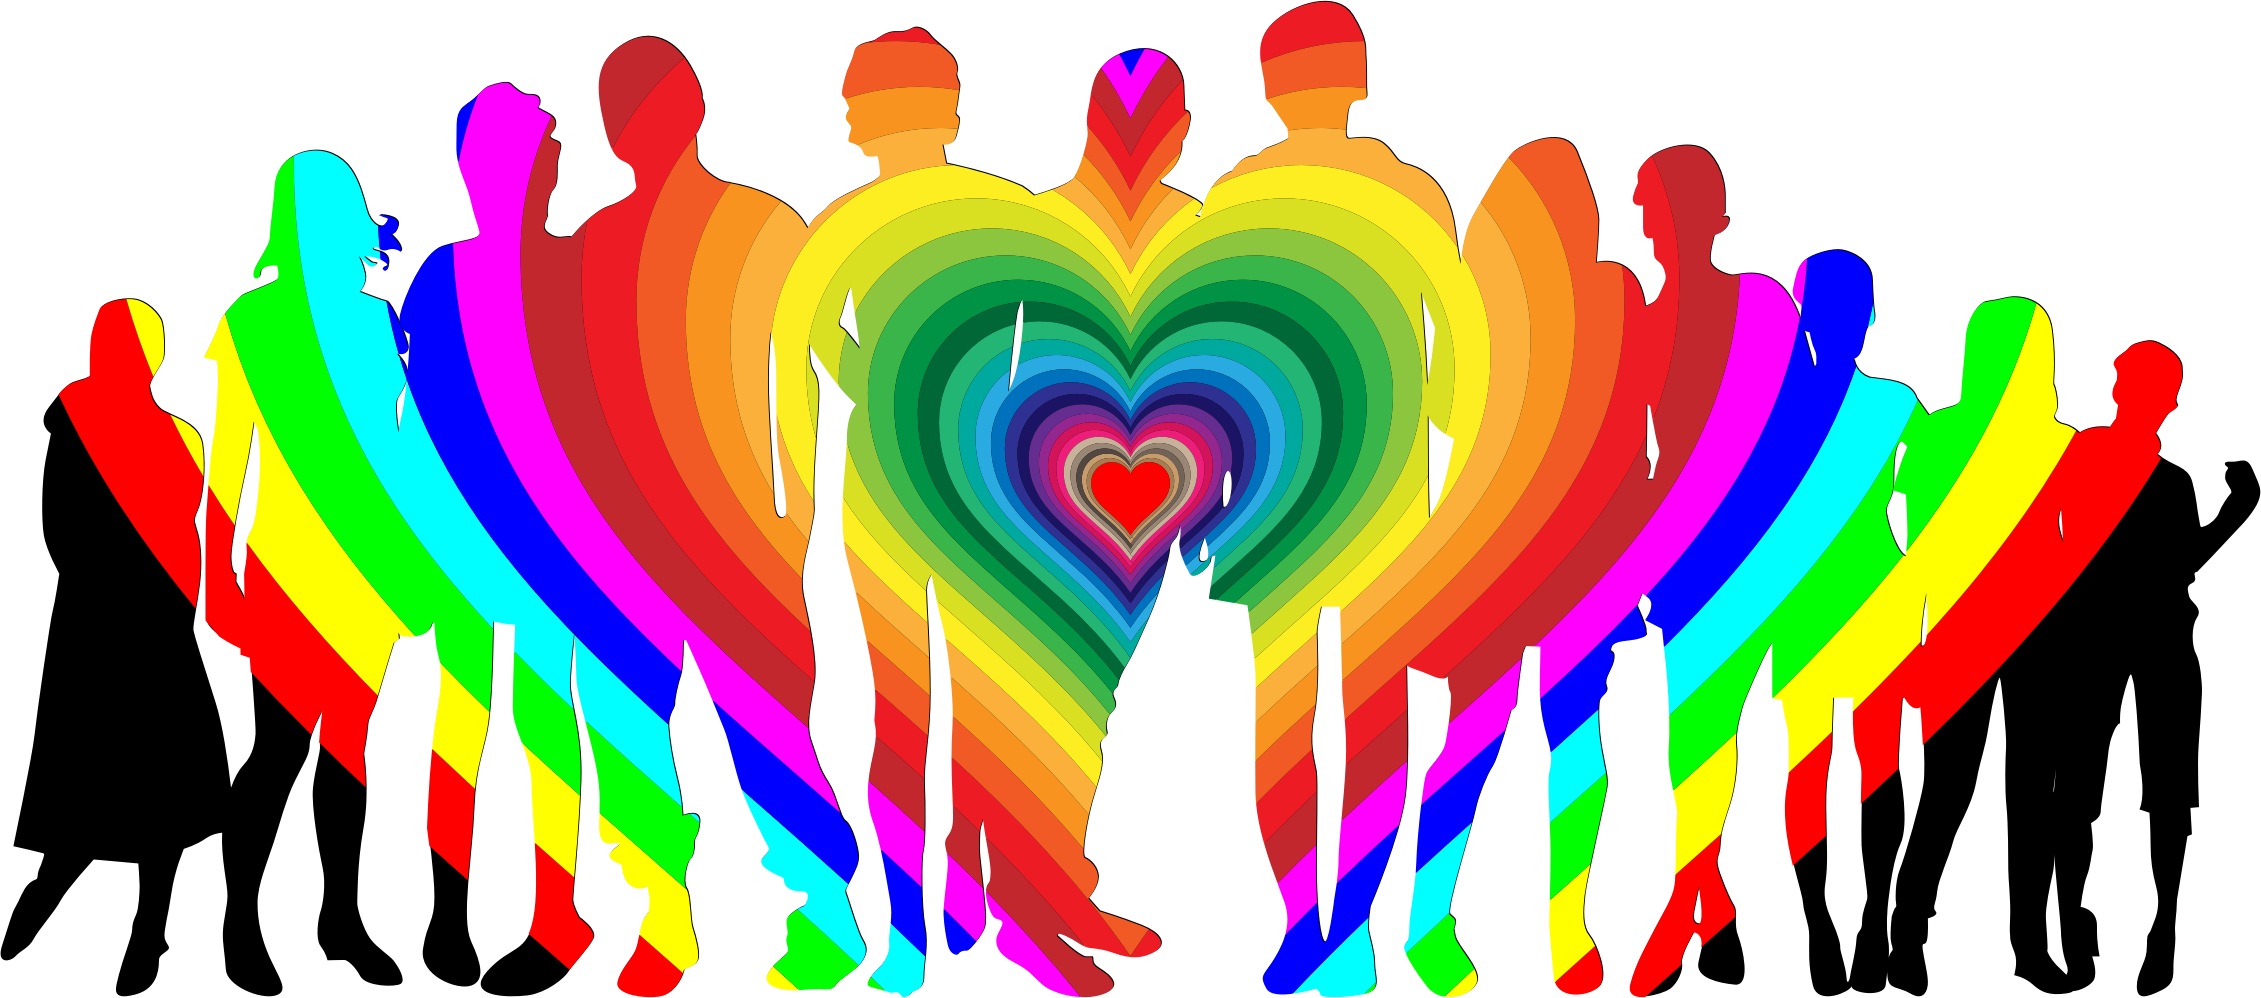 Human clipart human family. Prismatic love icons png